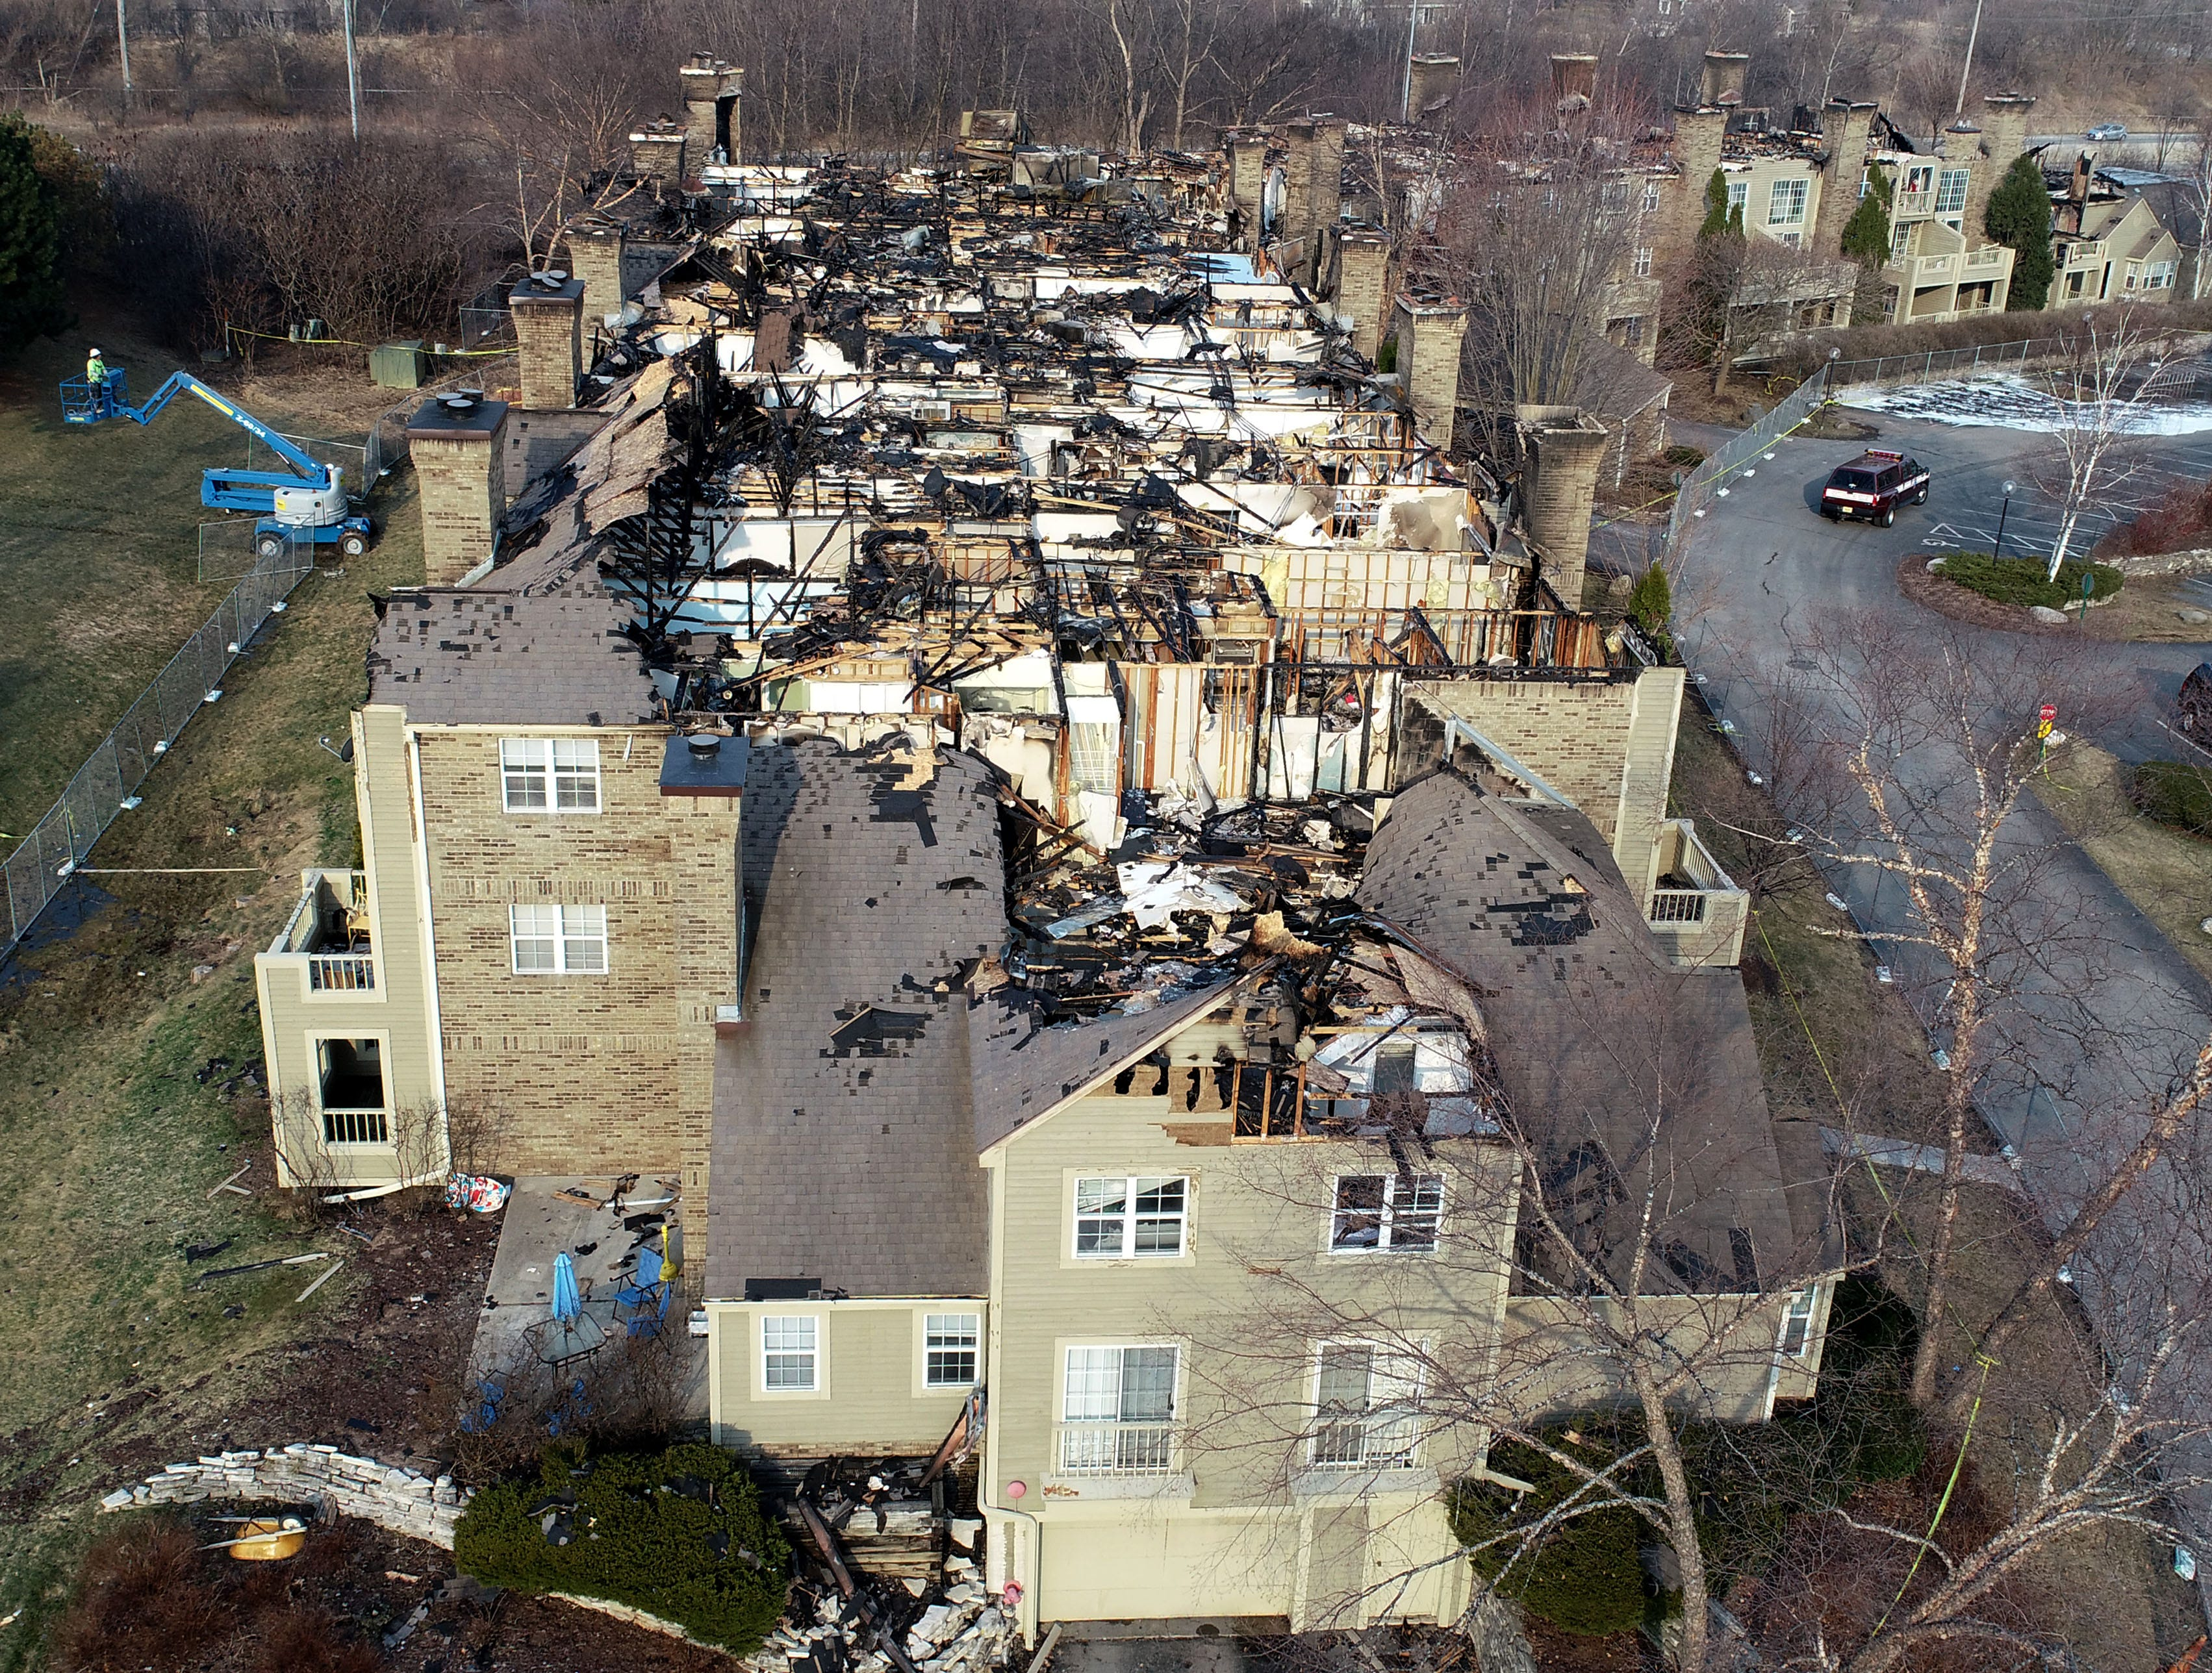 An aerial view from a drone shows the destruction after a fire at the White Oaks apartment complex in Bayside.